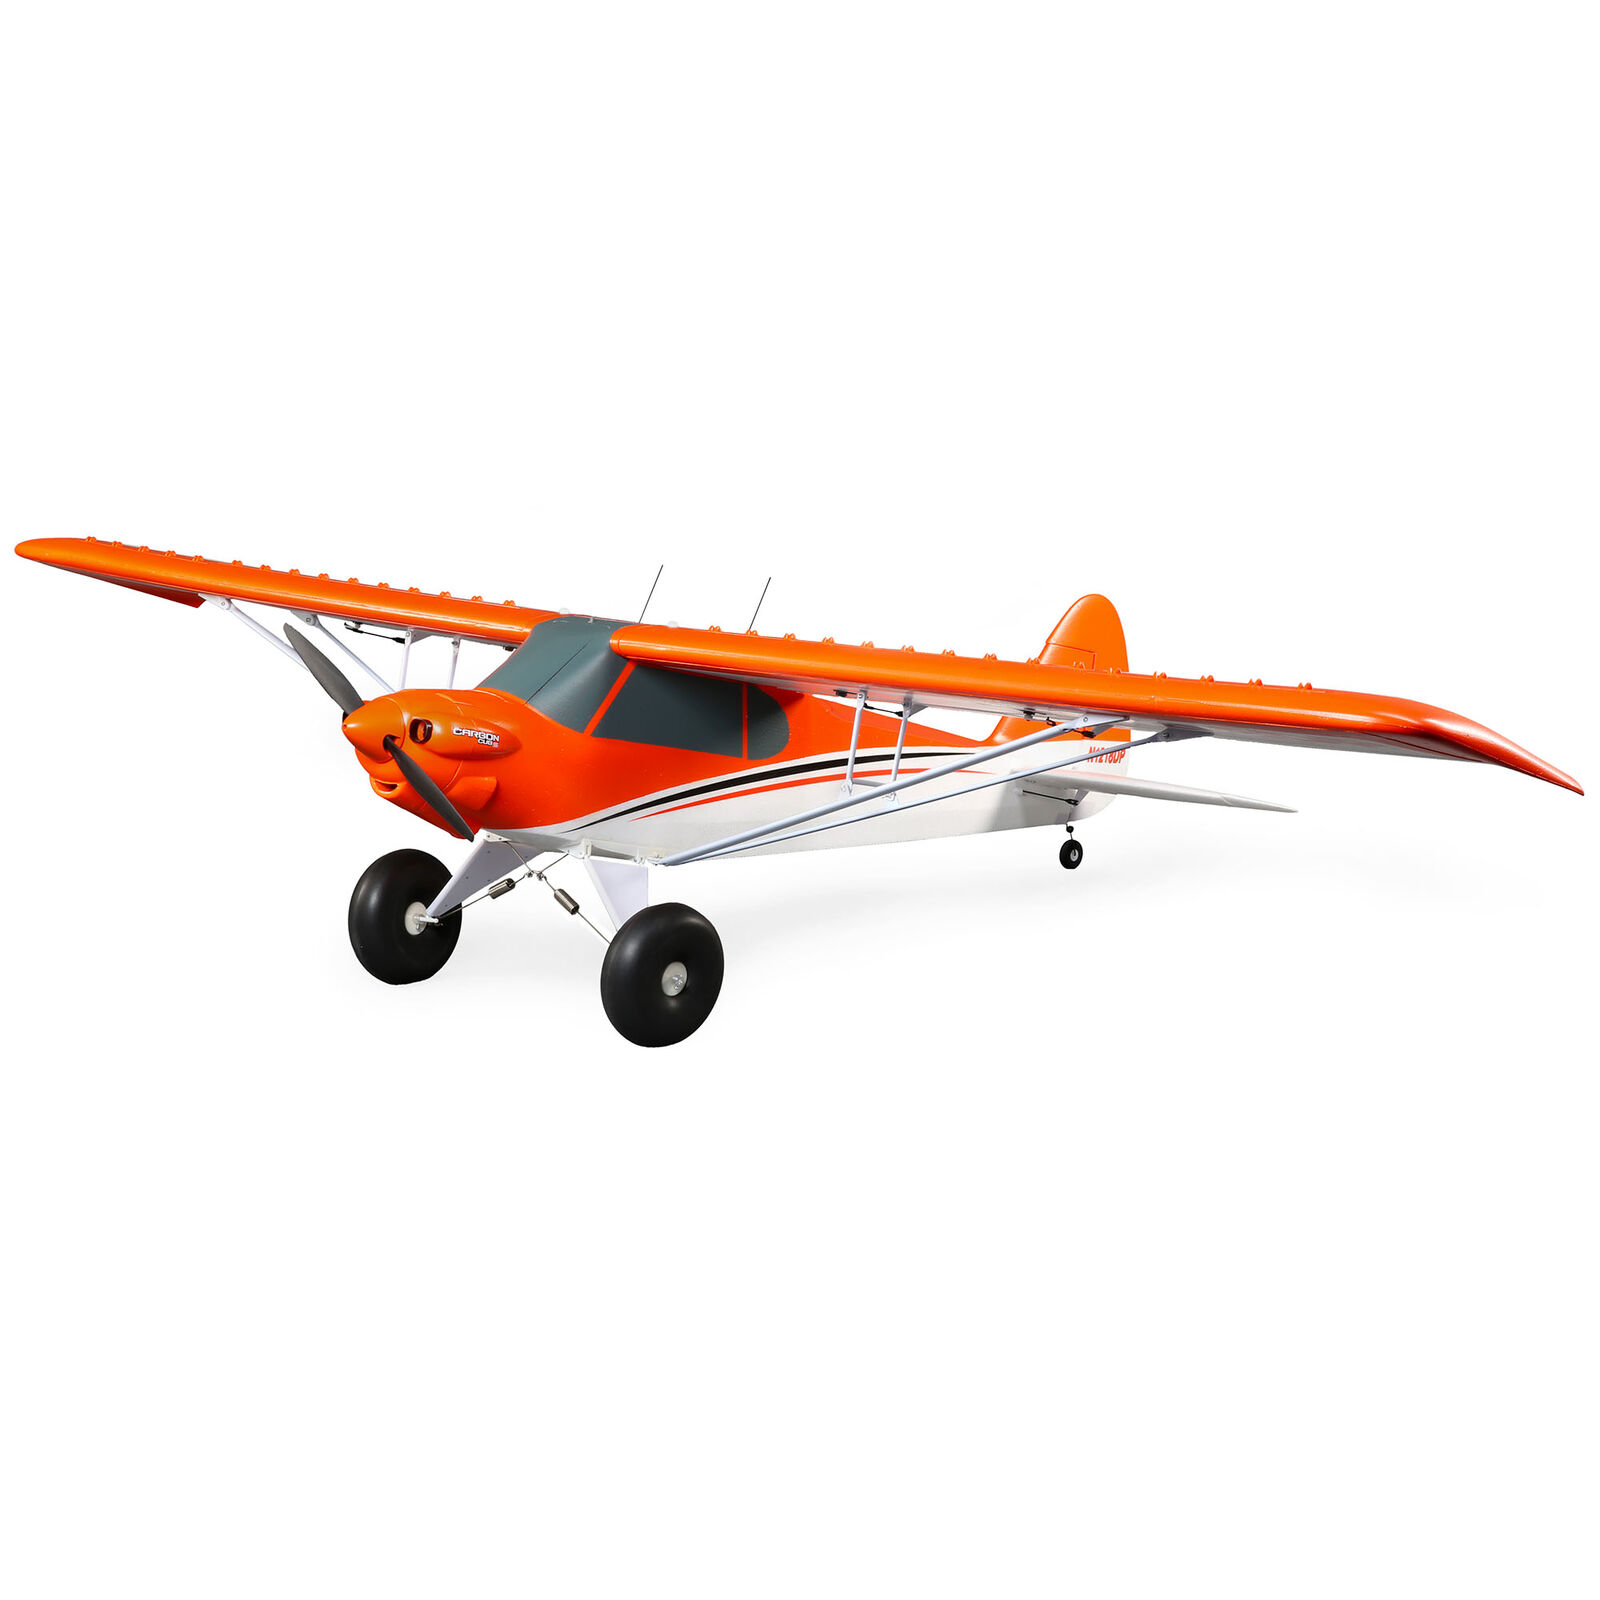 Carbon-Z Cub SS 2.1m BNF Basic with AS3X and SAFE Select